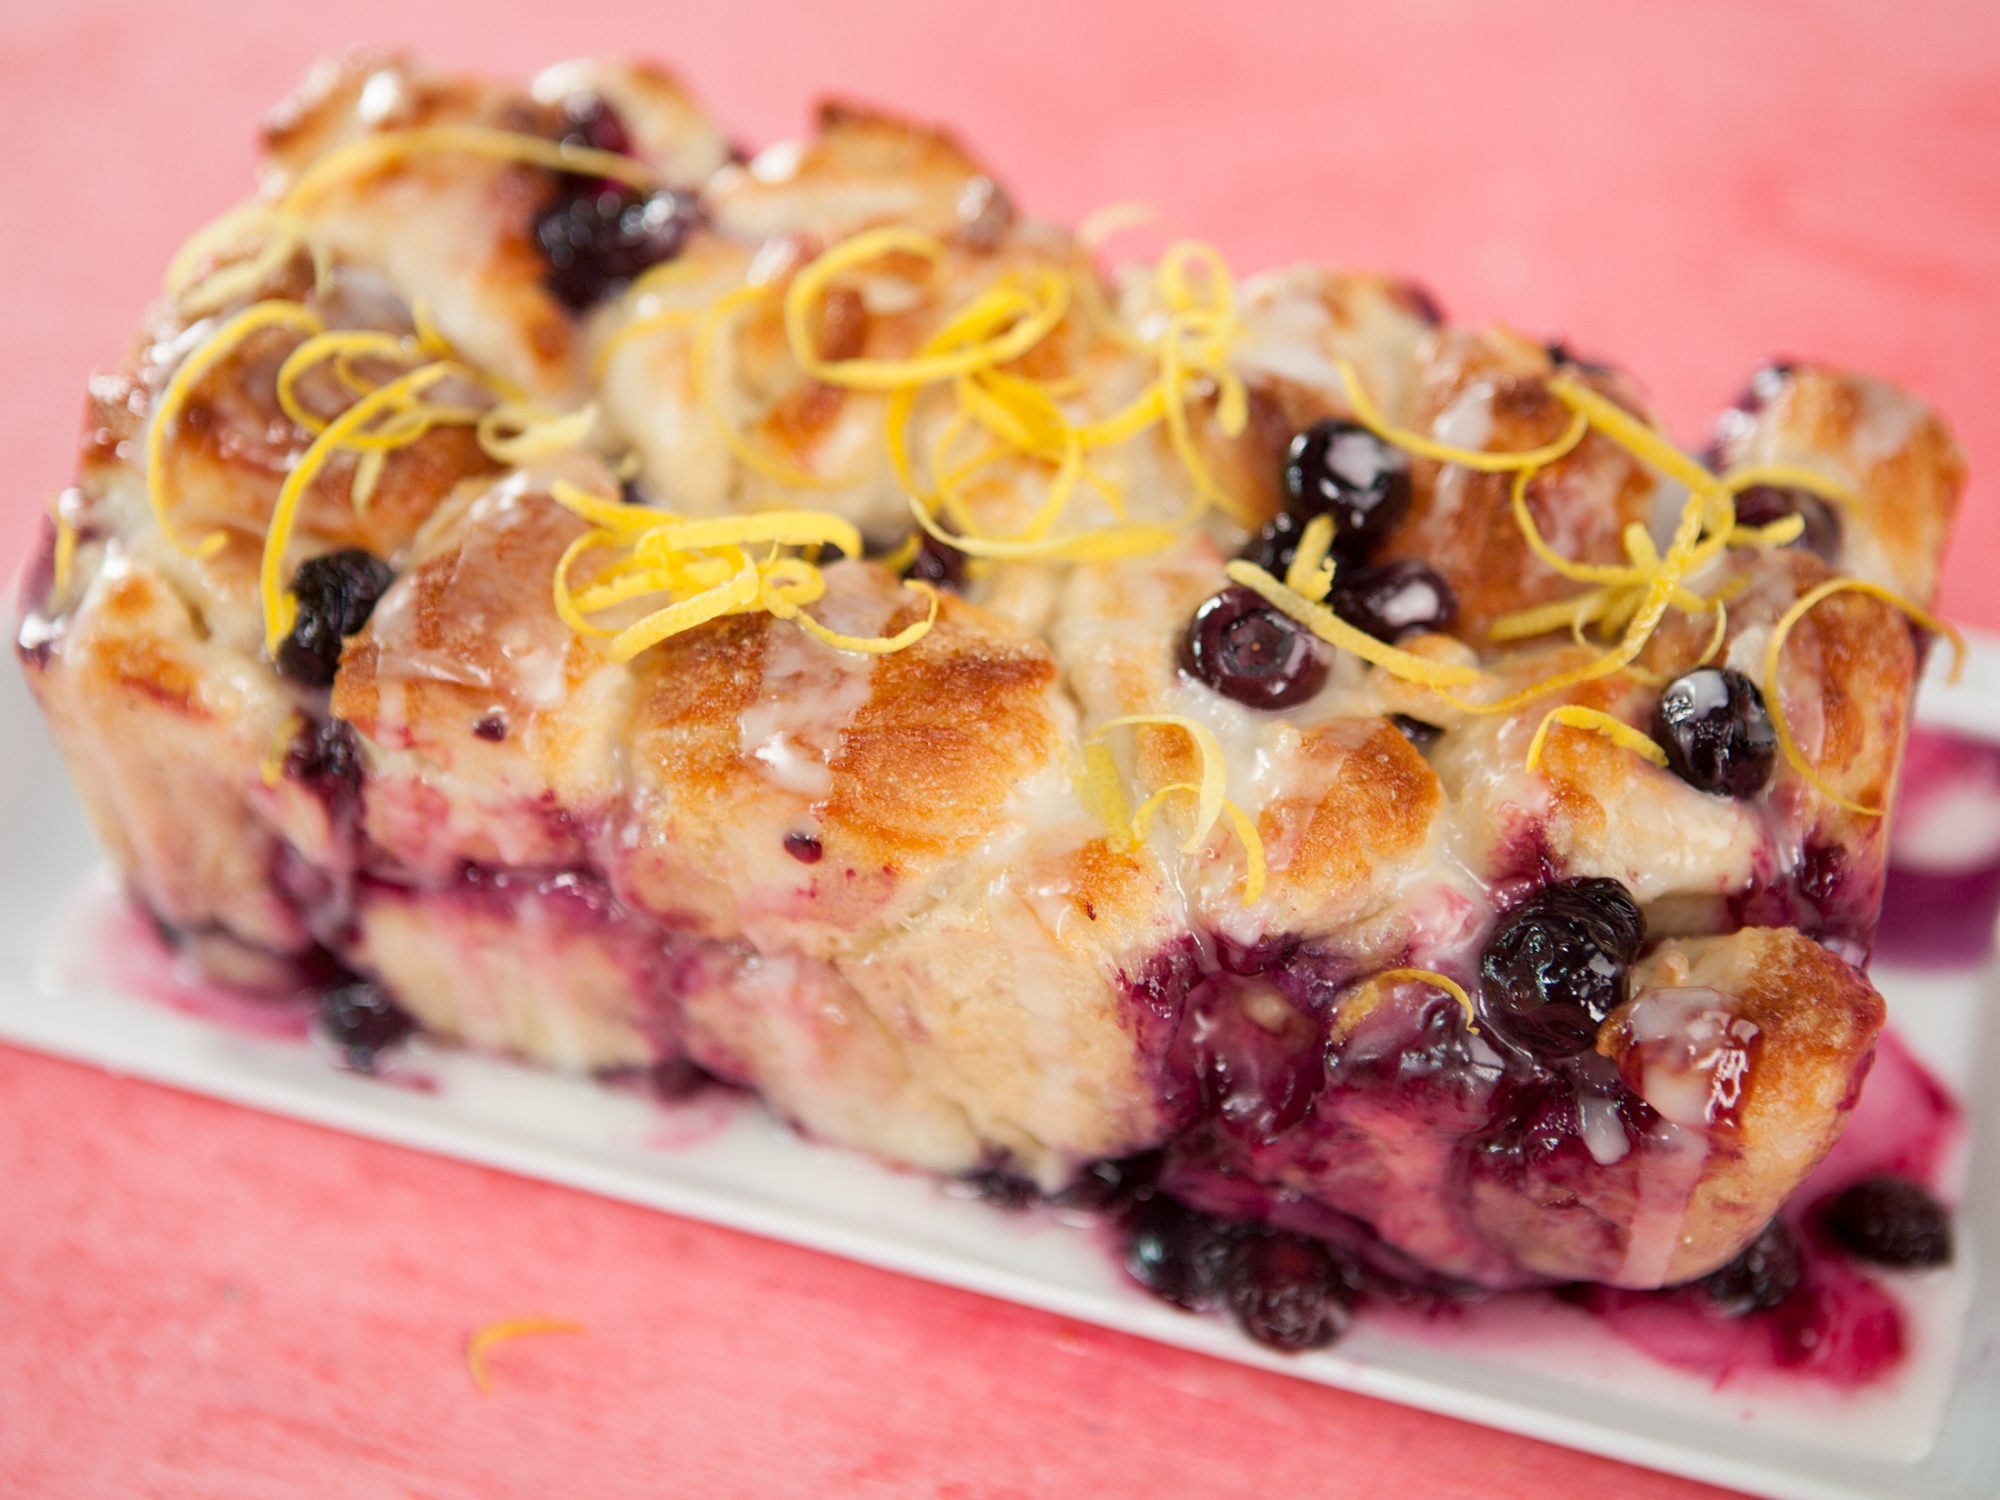 Blueberry Lemon Monkey Bread image